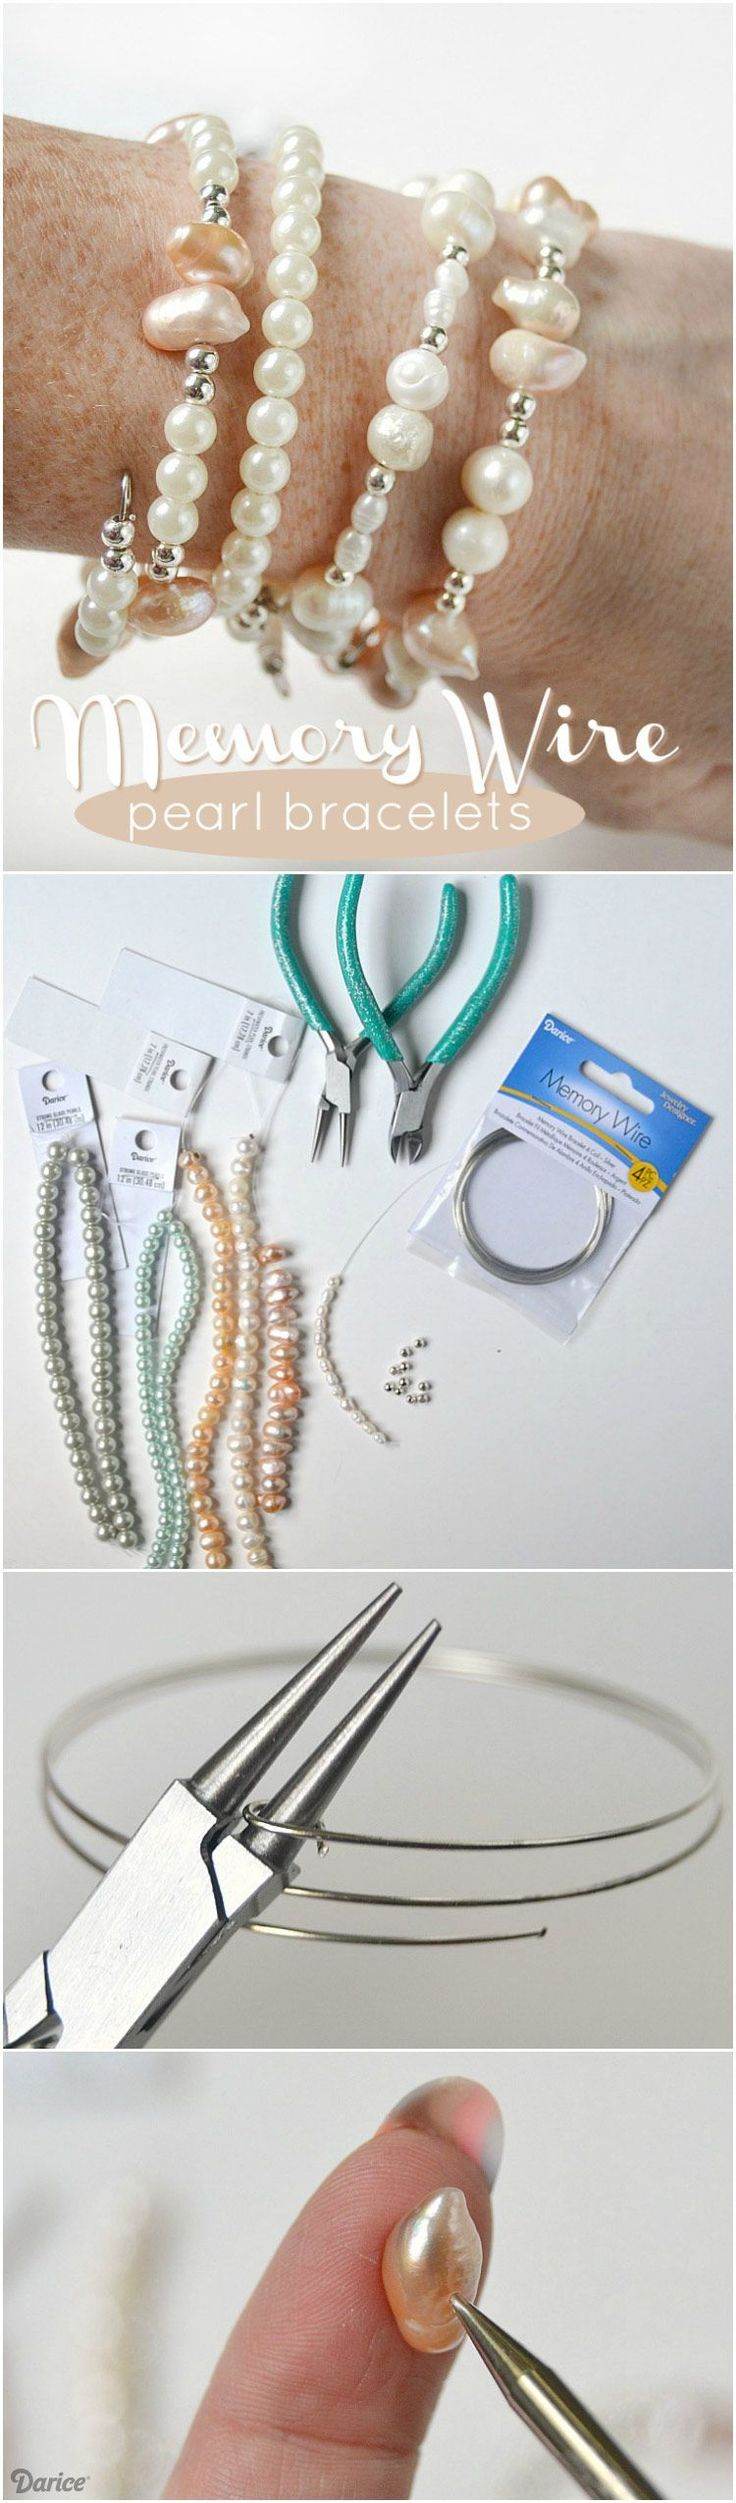 Glass pearl beads and freshwater pearls combine in this easy memory wire bracelet tutorial. What a great beginner jewelry making project! #jewelrymakingmetals